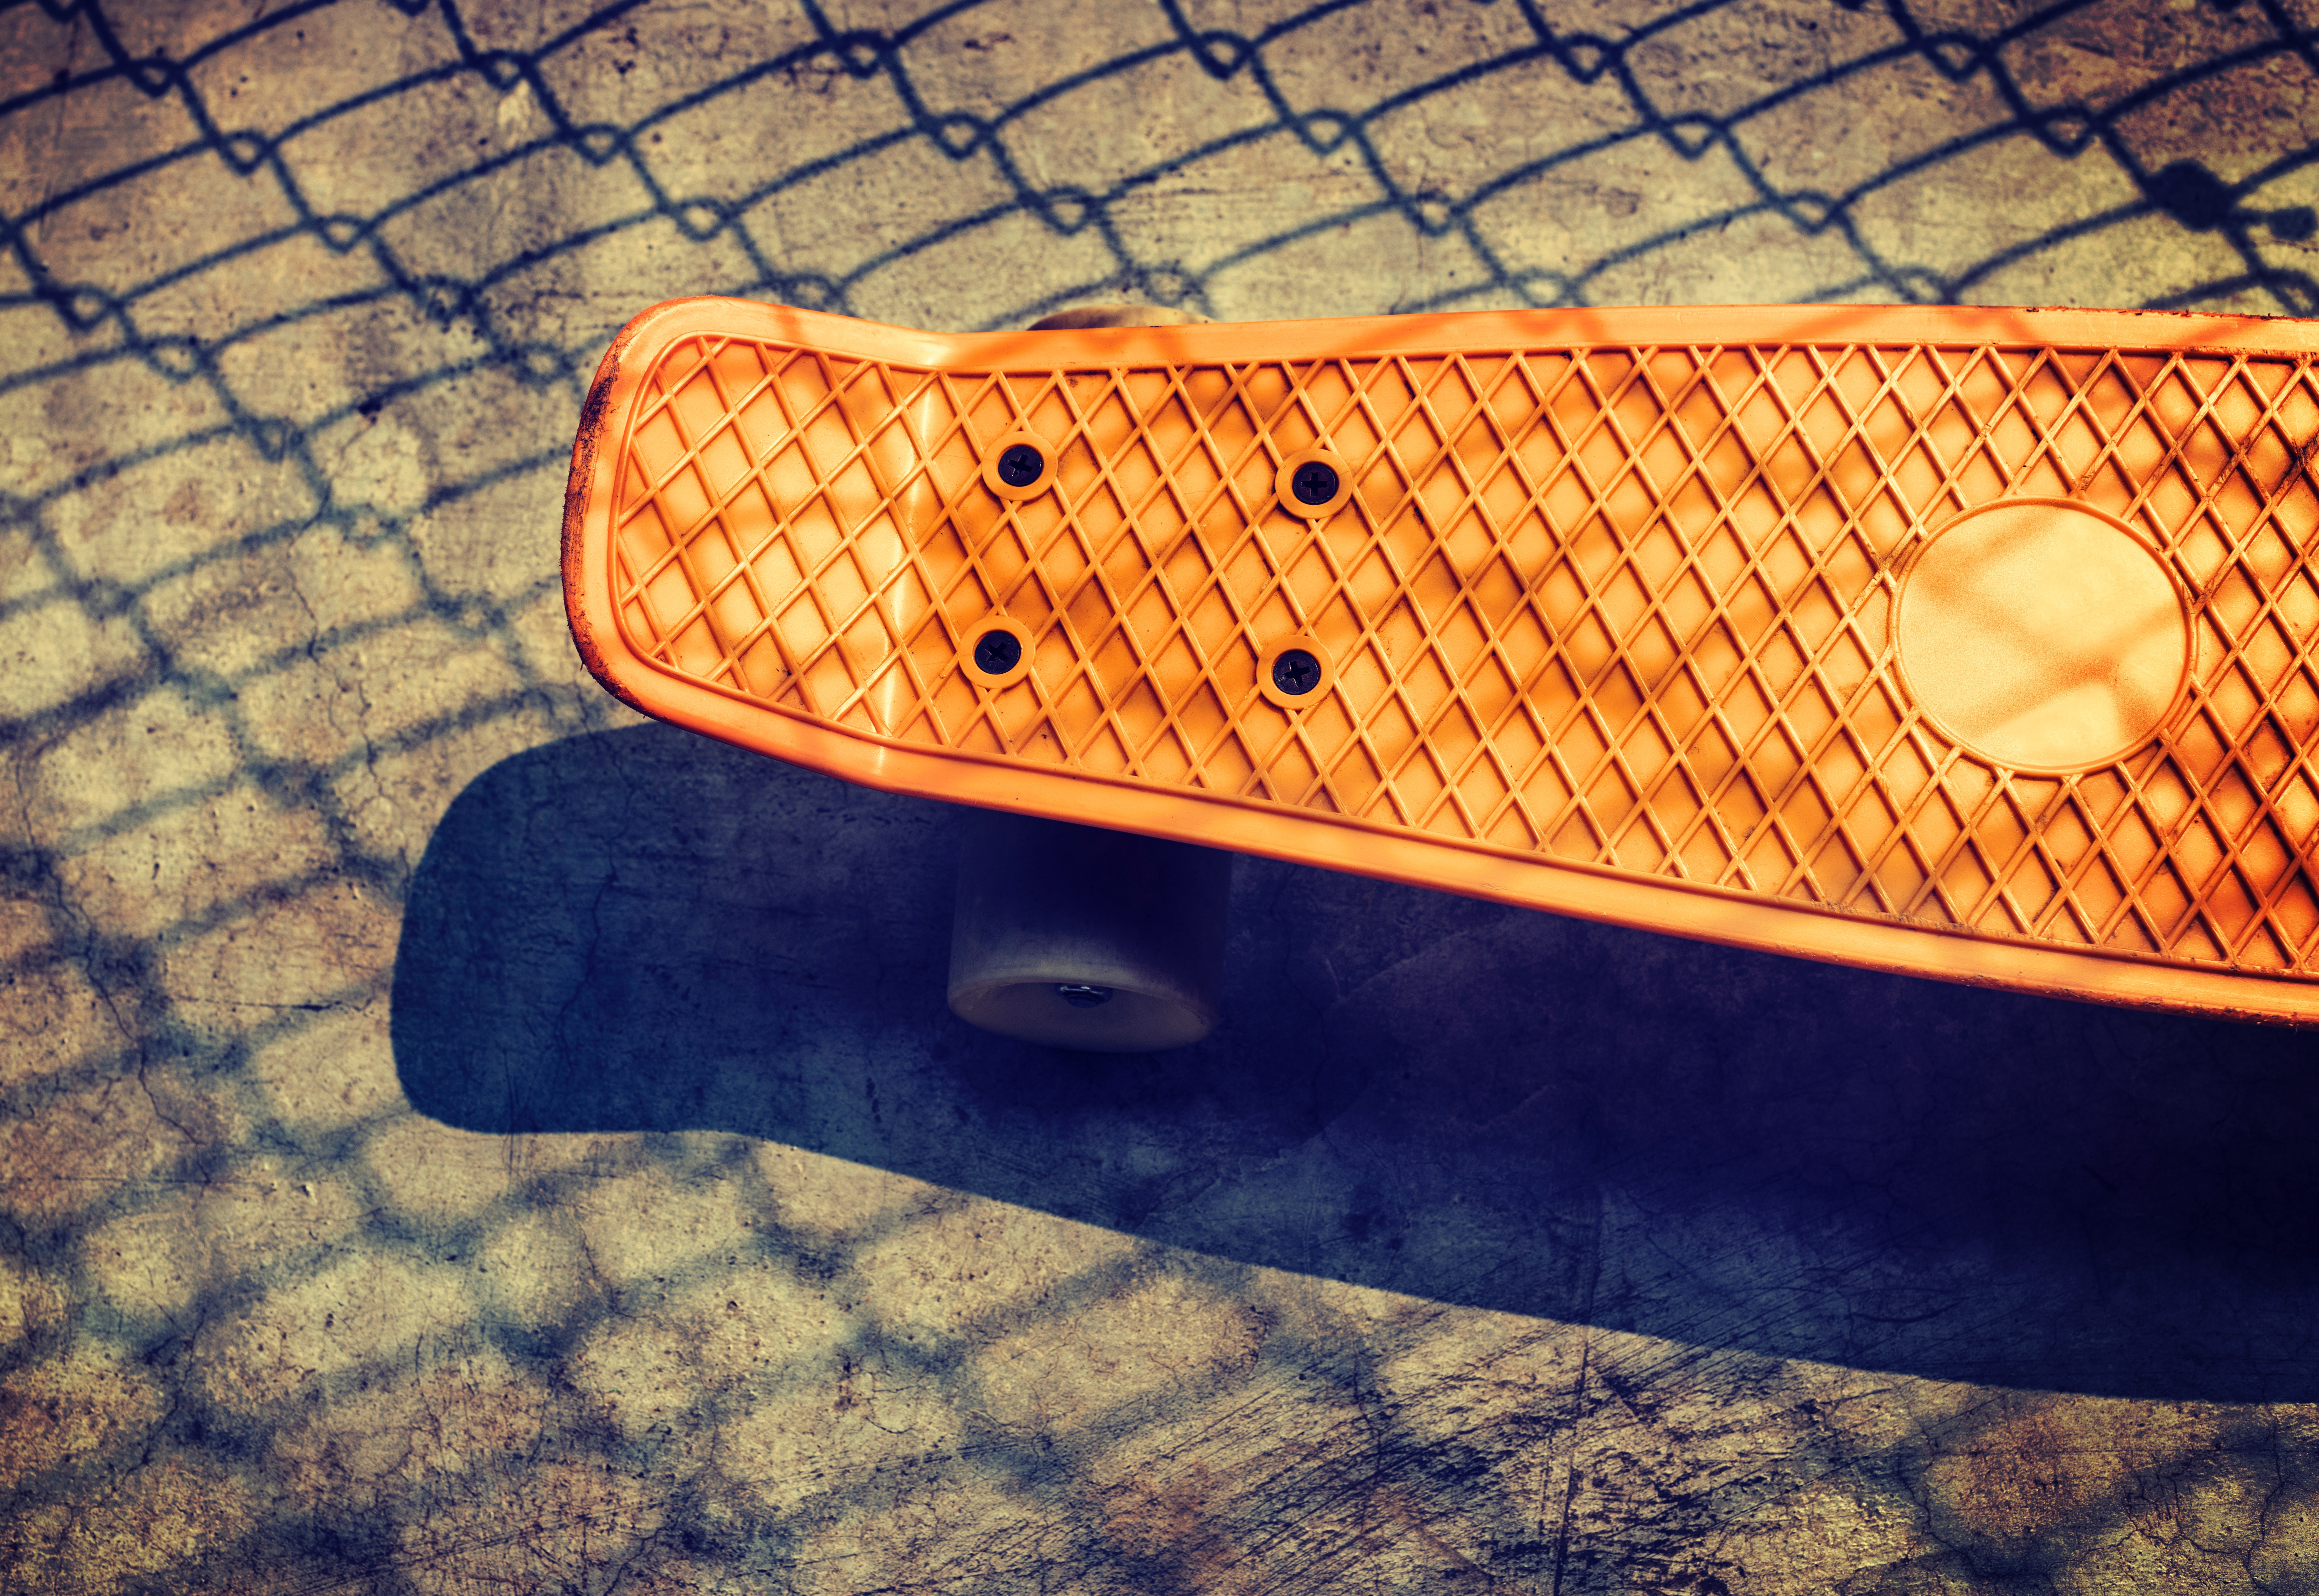 High Angle View of a Skateboard, Recreation, Texture, Sunlight, Summer, HQ Photo